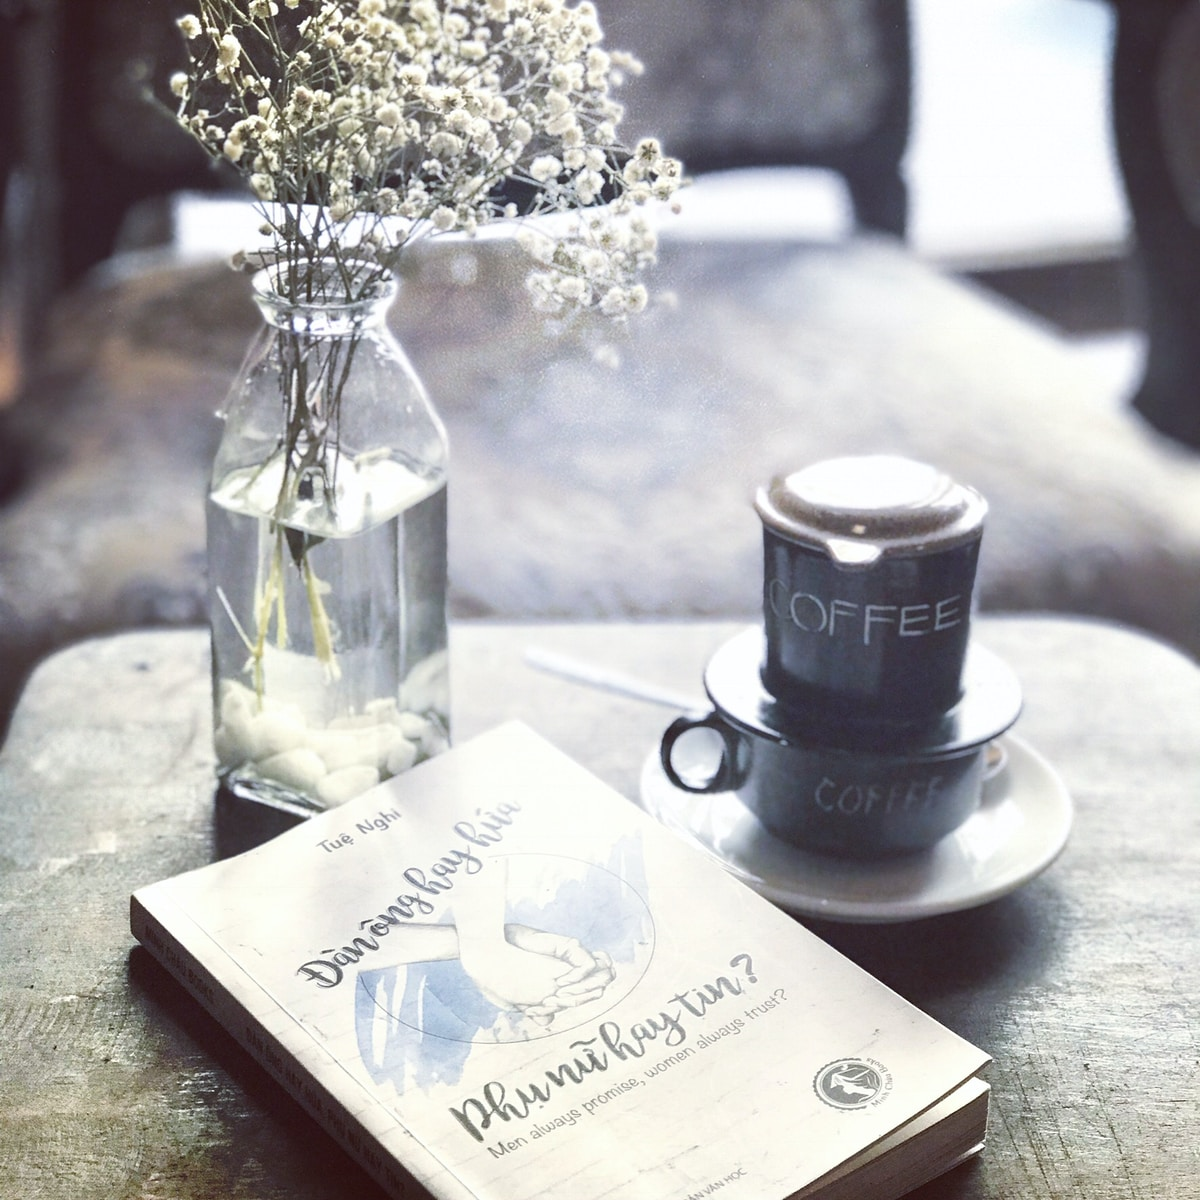 labeled book near teacup and saucer and vase